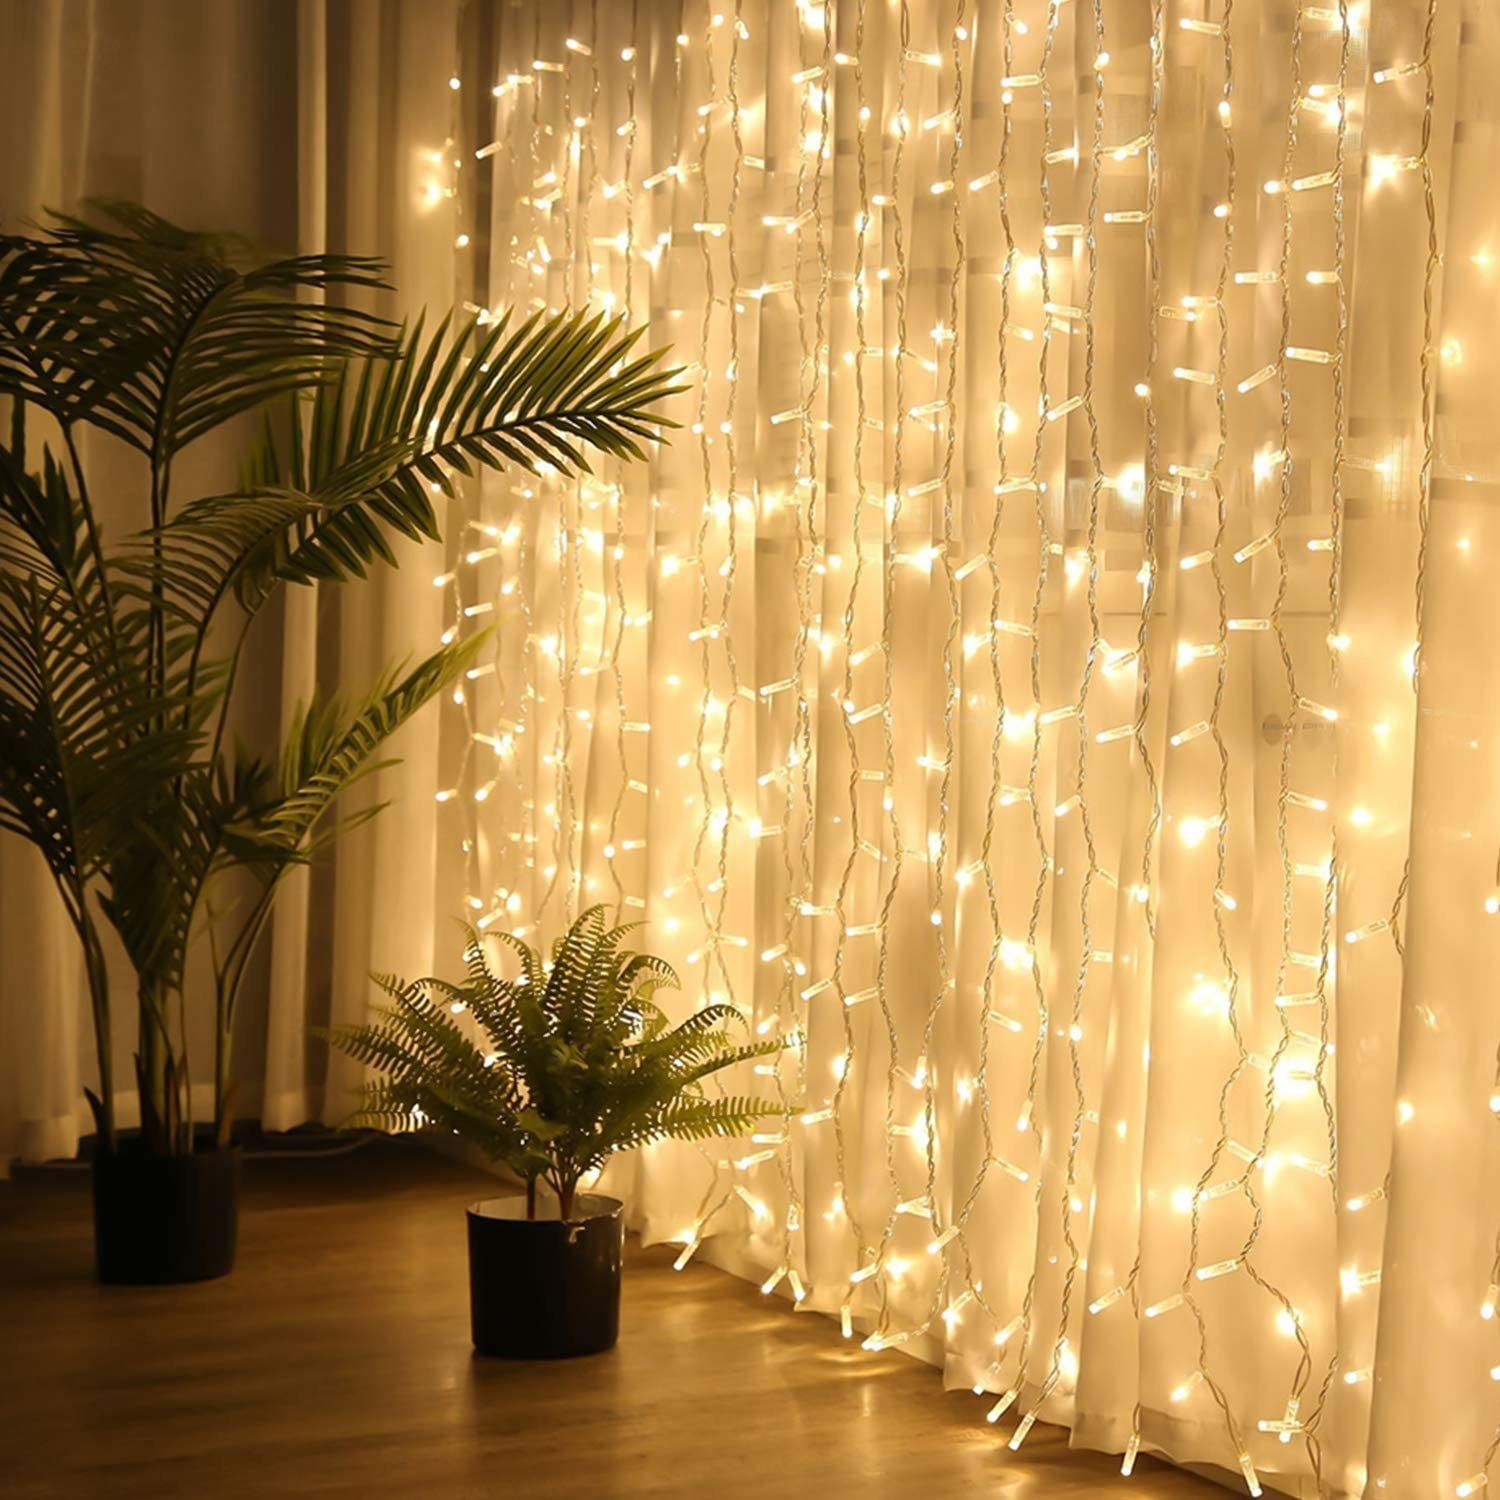 A curtain of lights next to two potted plants